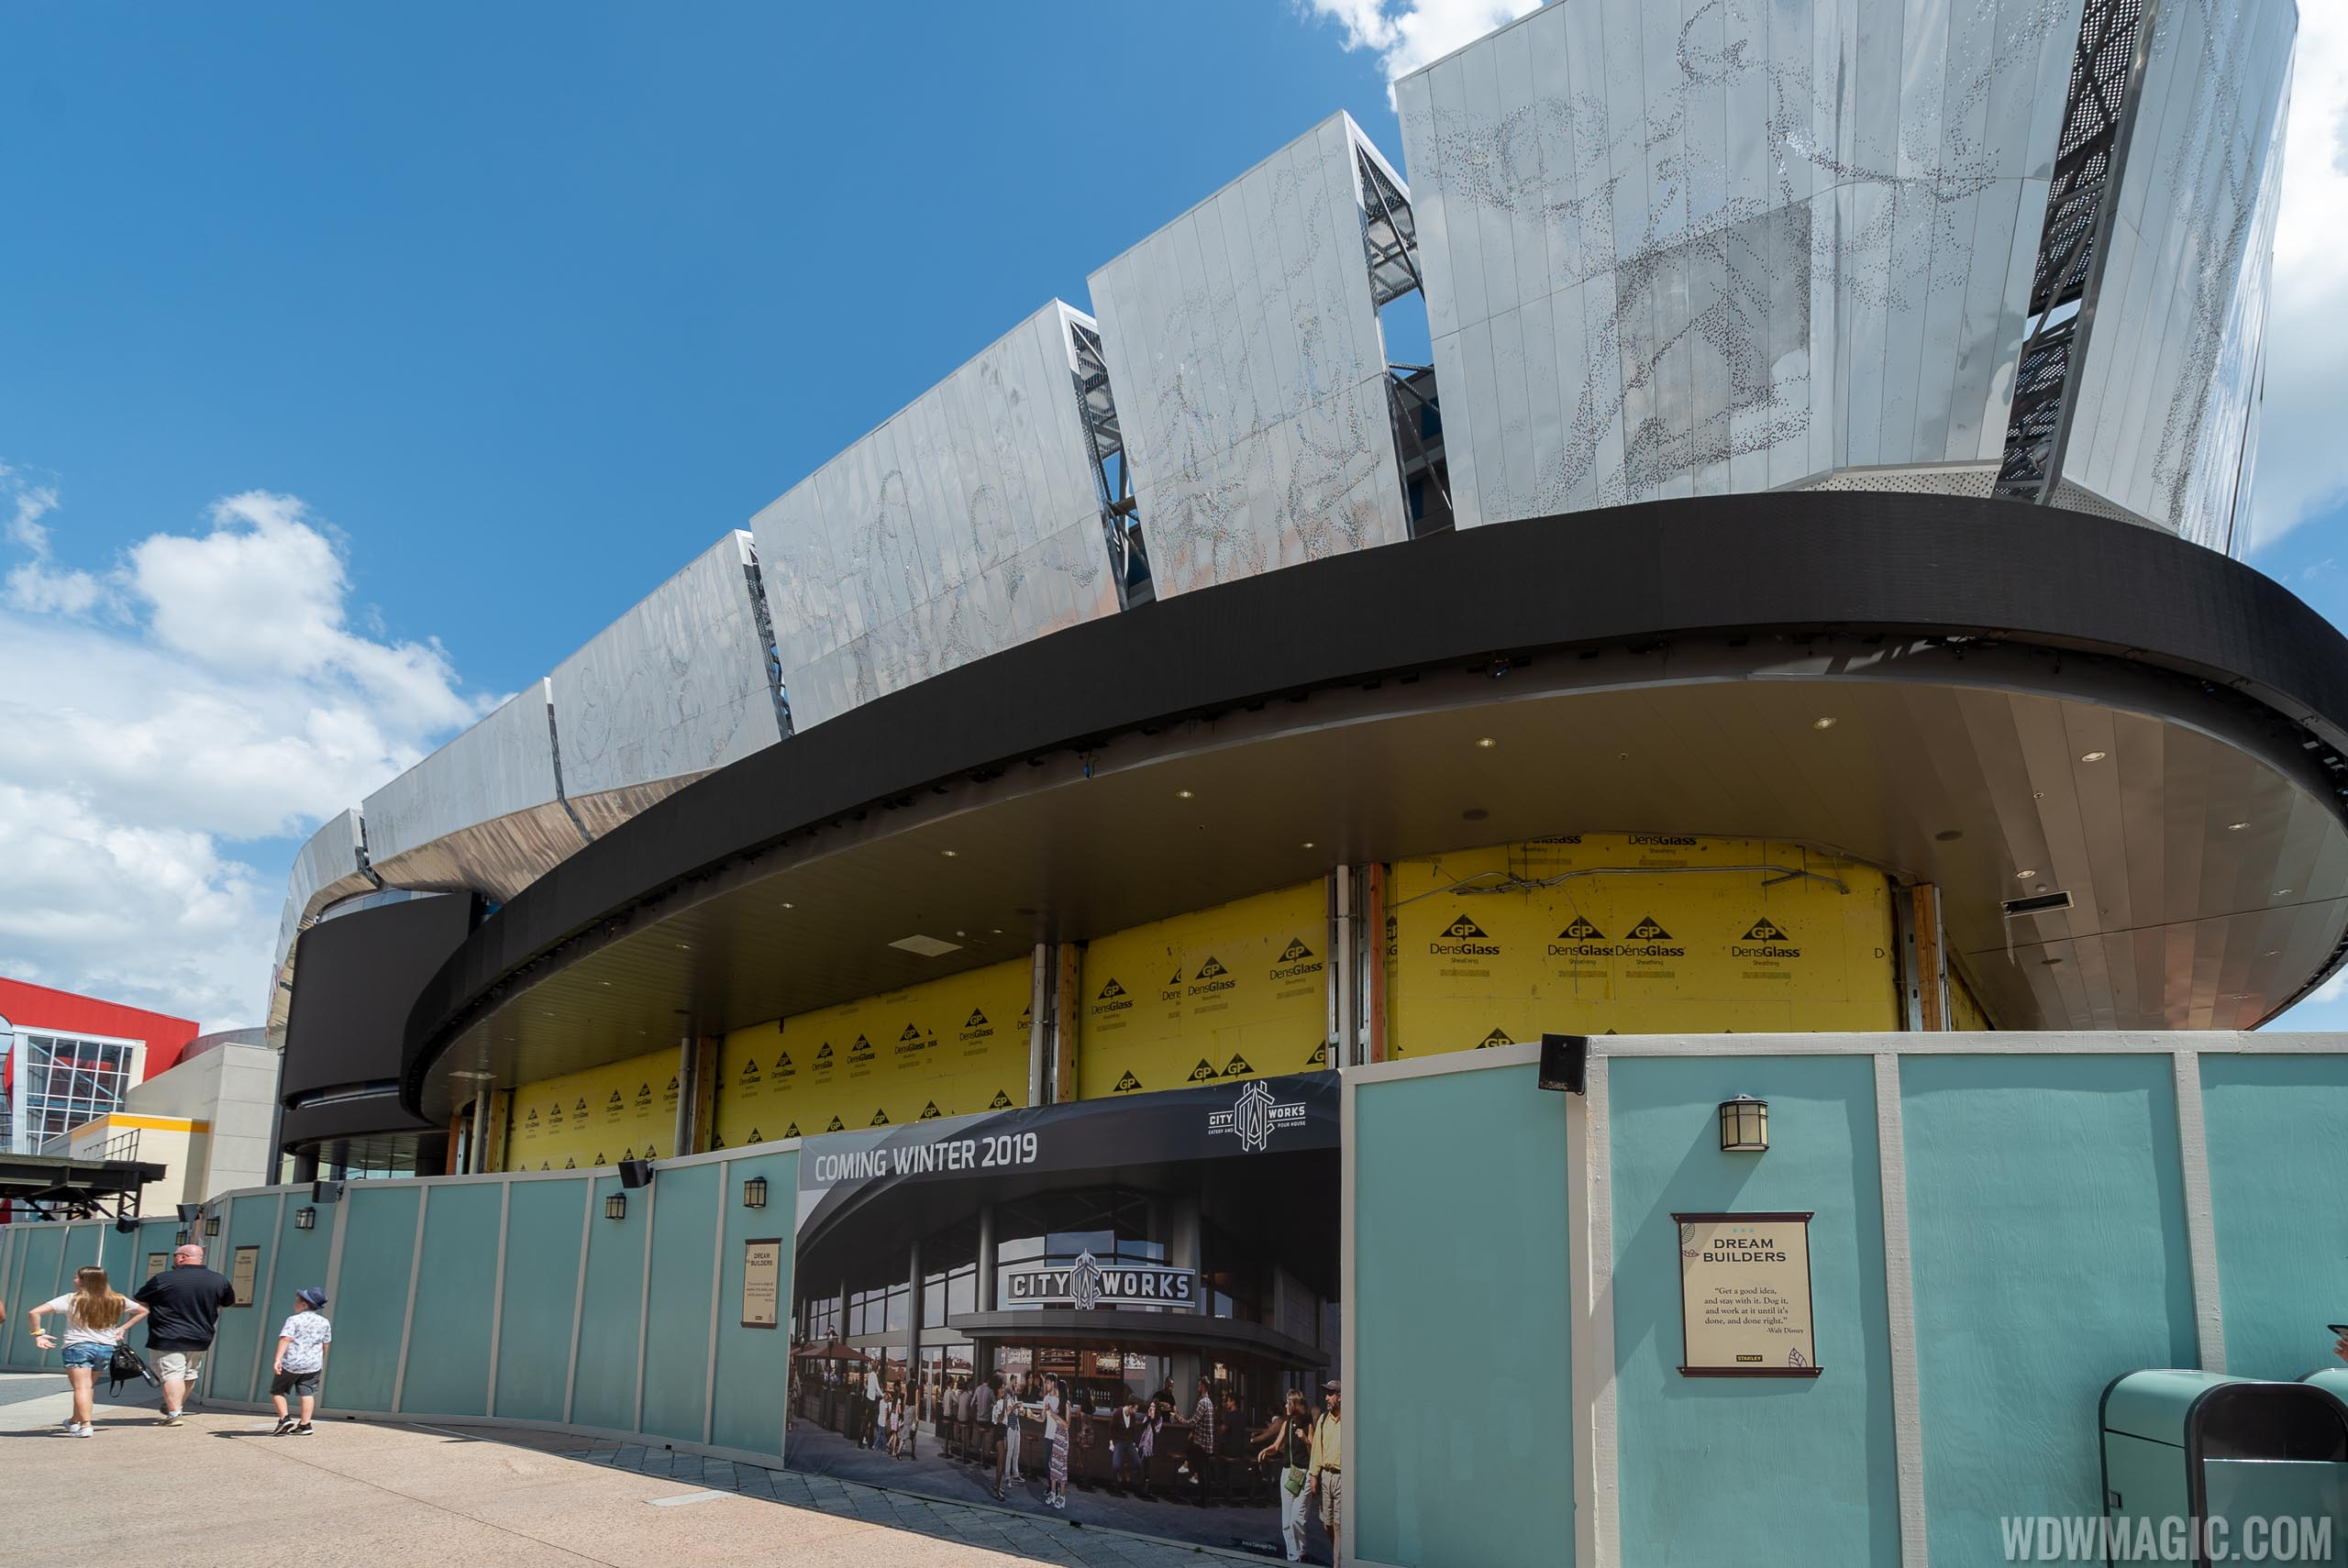 City Works Eatery and Pour House construction - June 2019